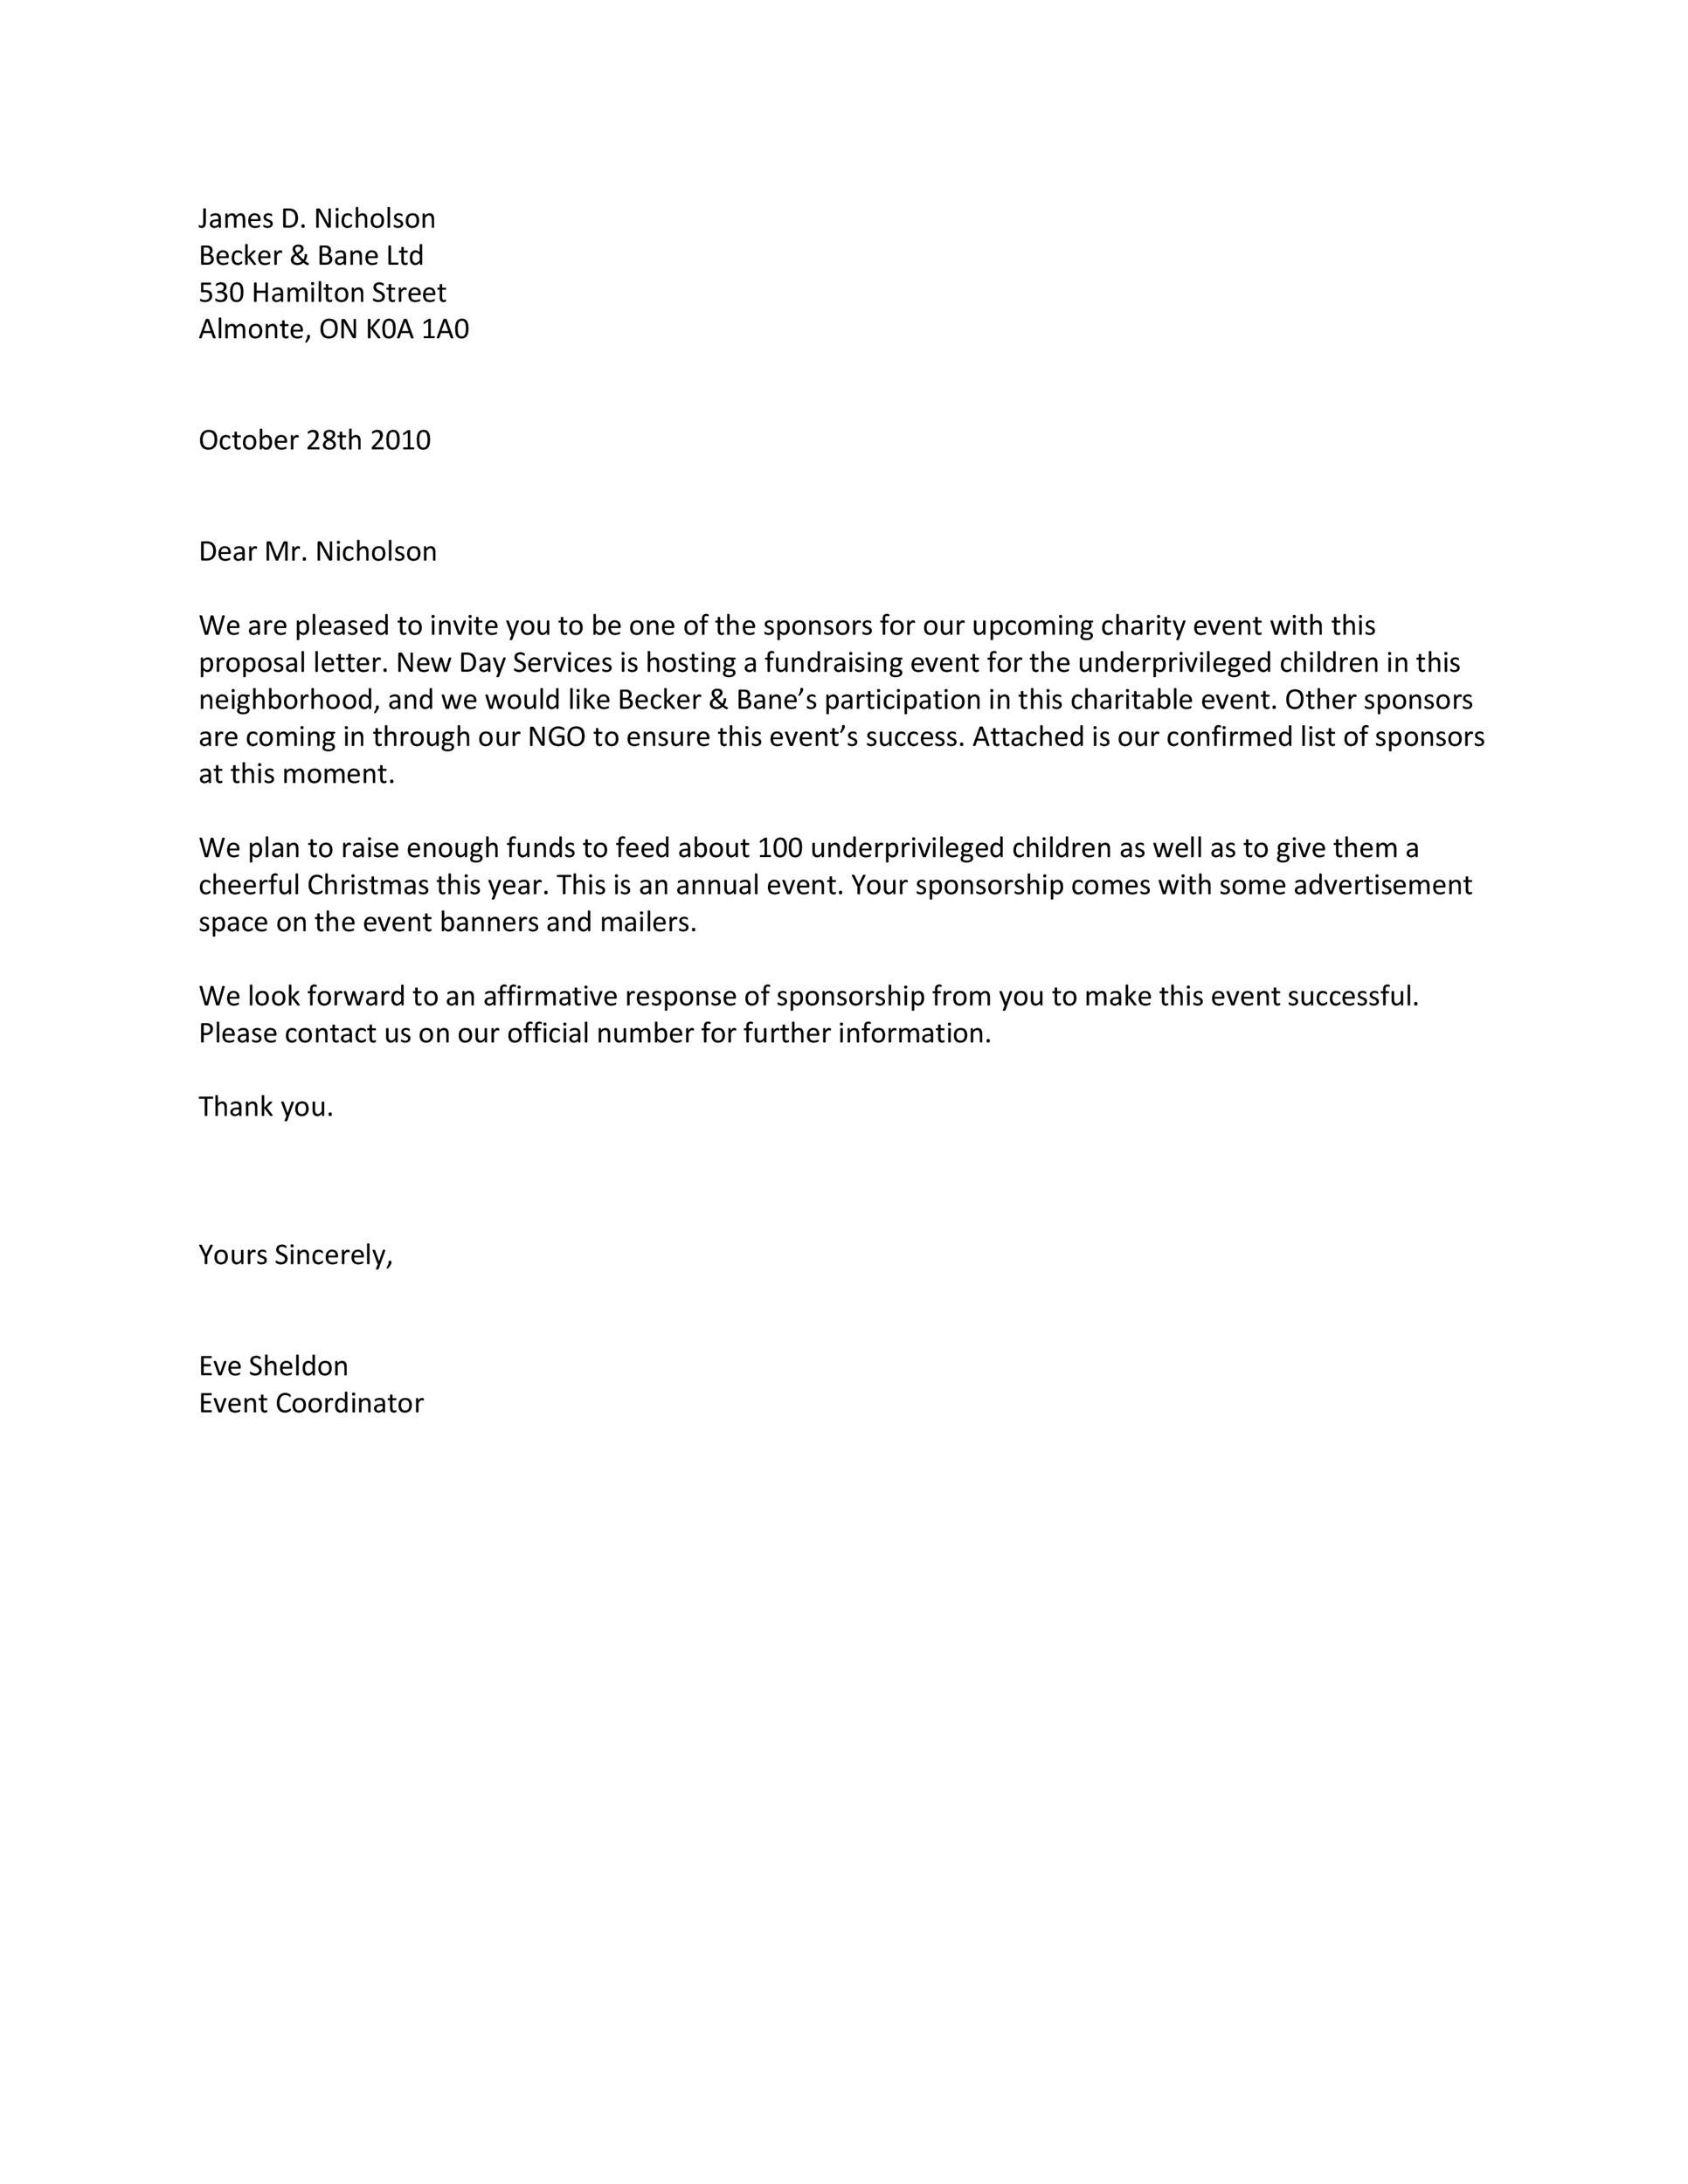 Proposal letter for sponsorship sample for event